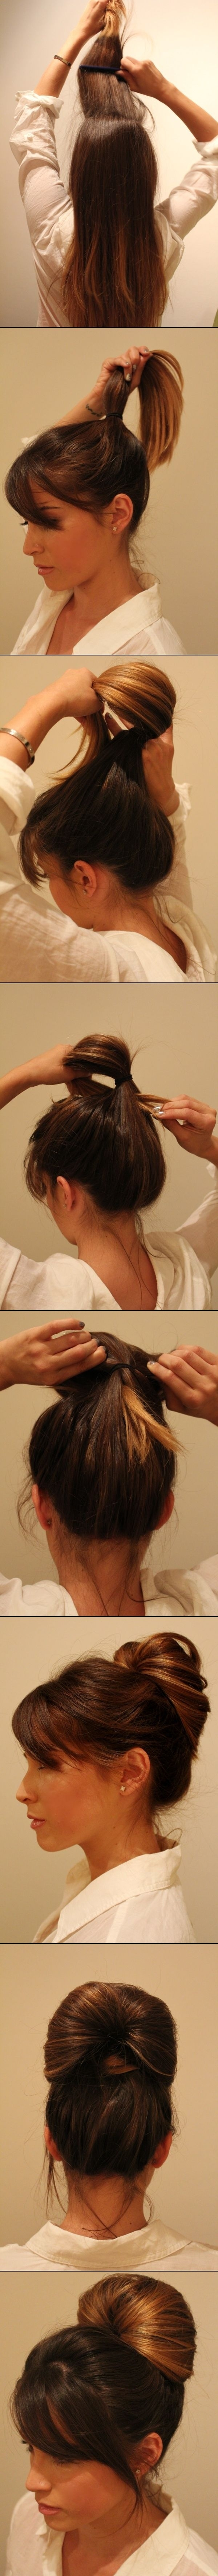 Simple tutorial for updos